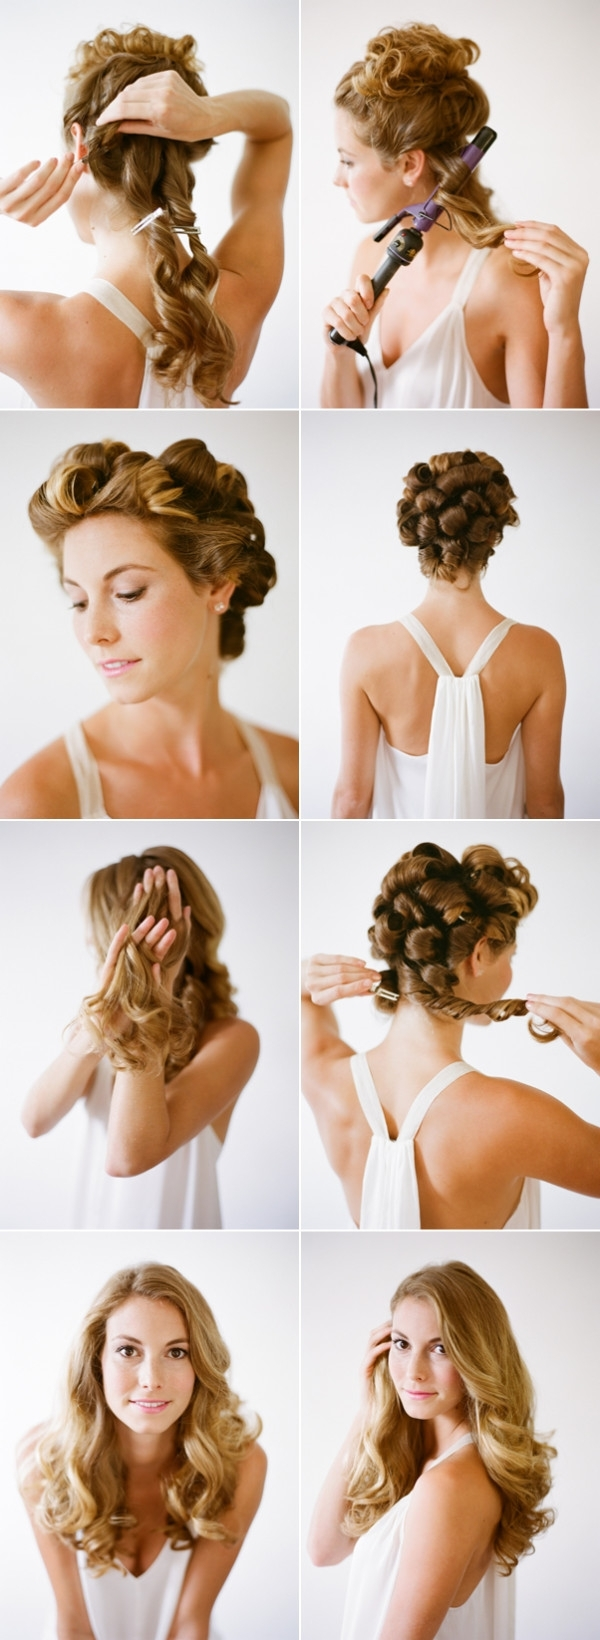 Diy Wedding Hairstyles – Hairstyles Inspiration Throughout Recent Wedding Hairstyles At Home (Gallery 14 of 15)